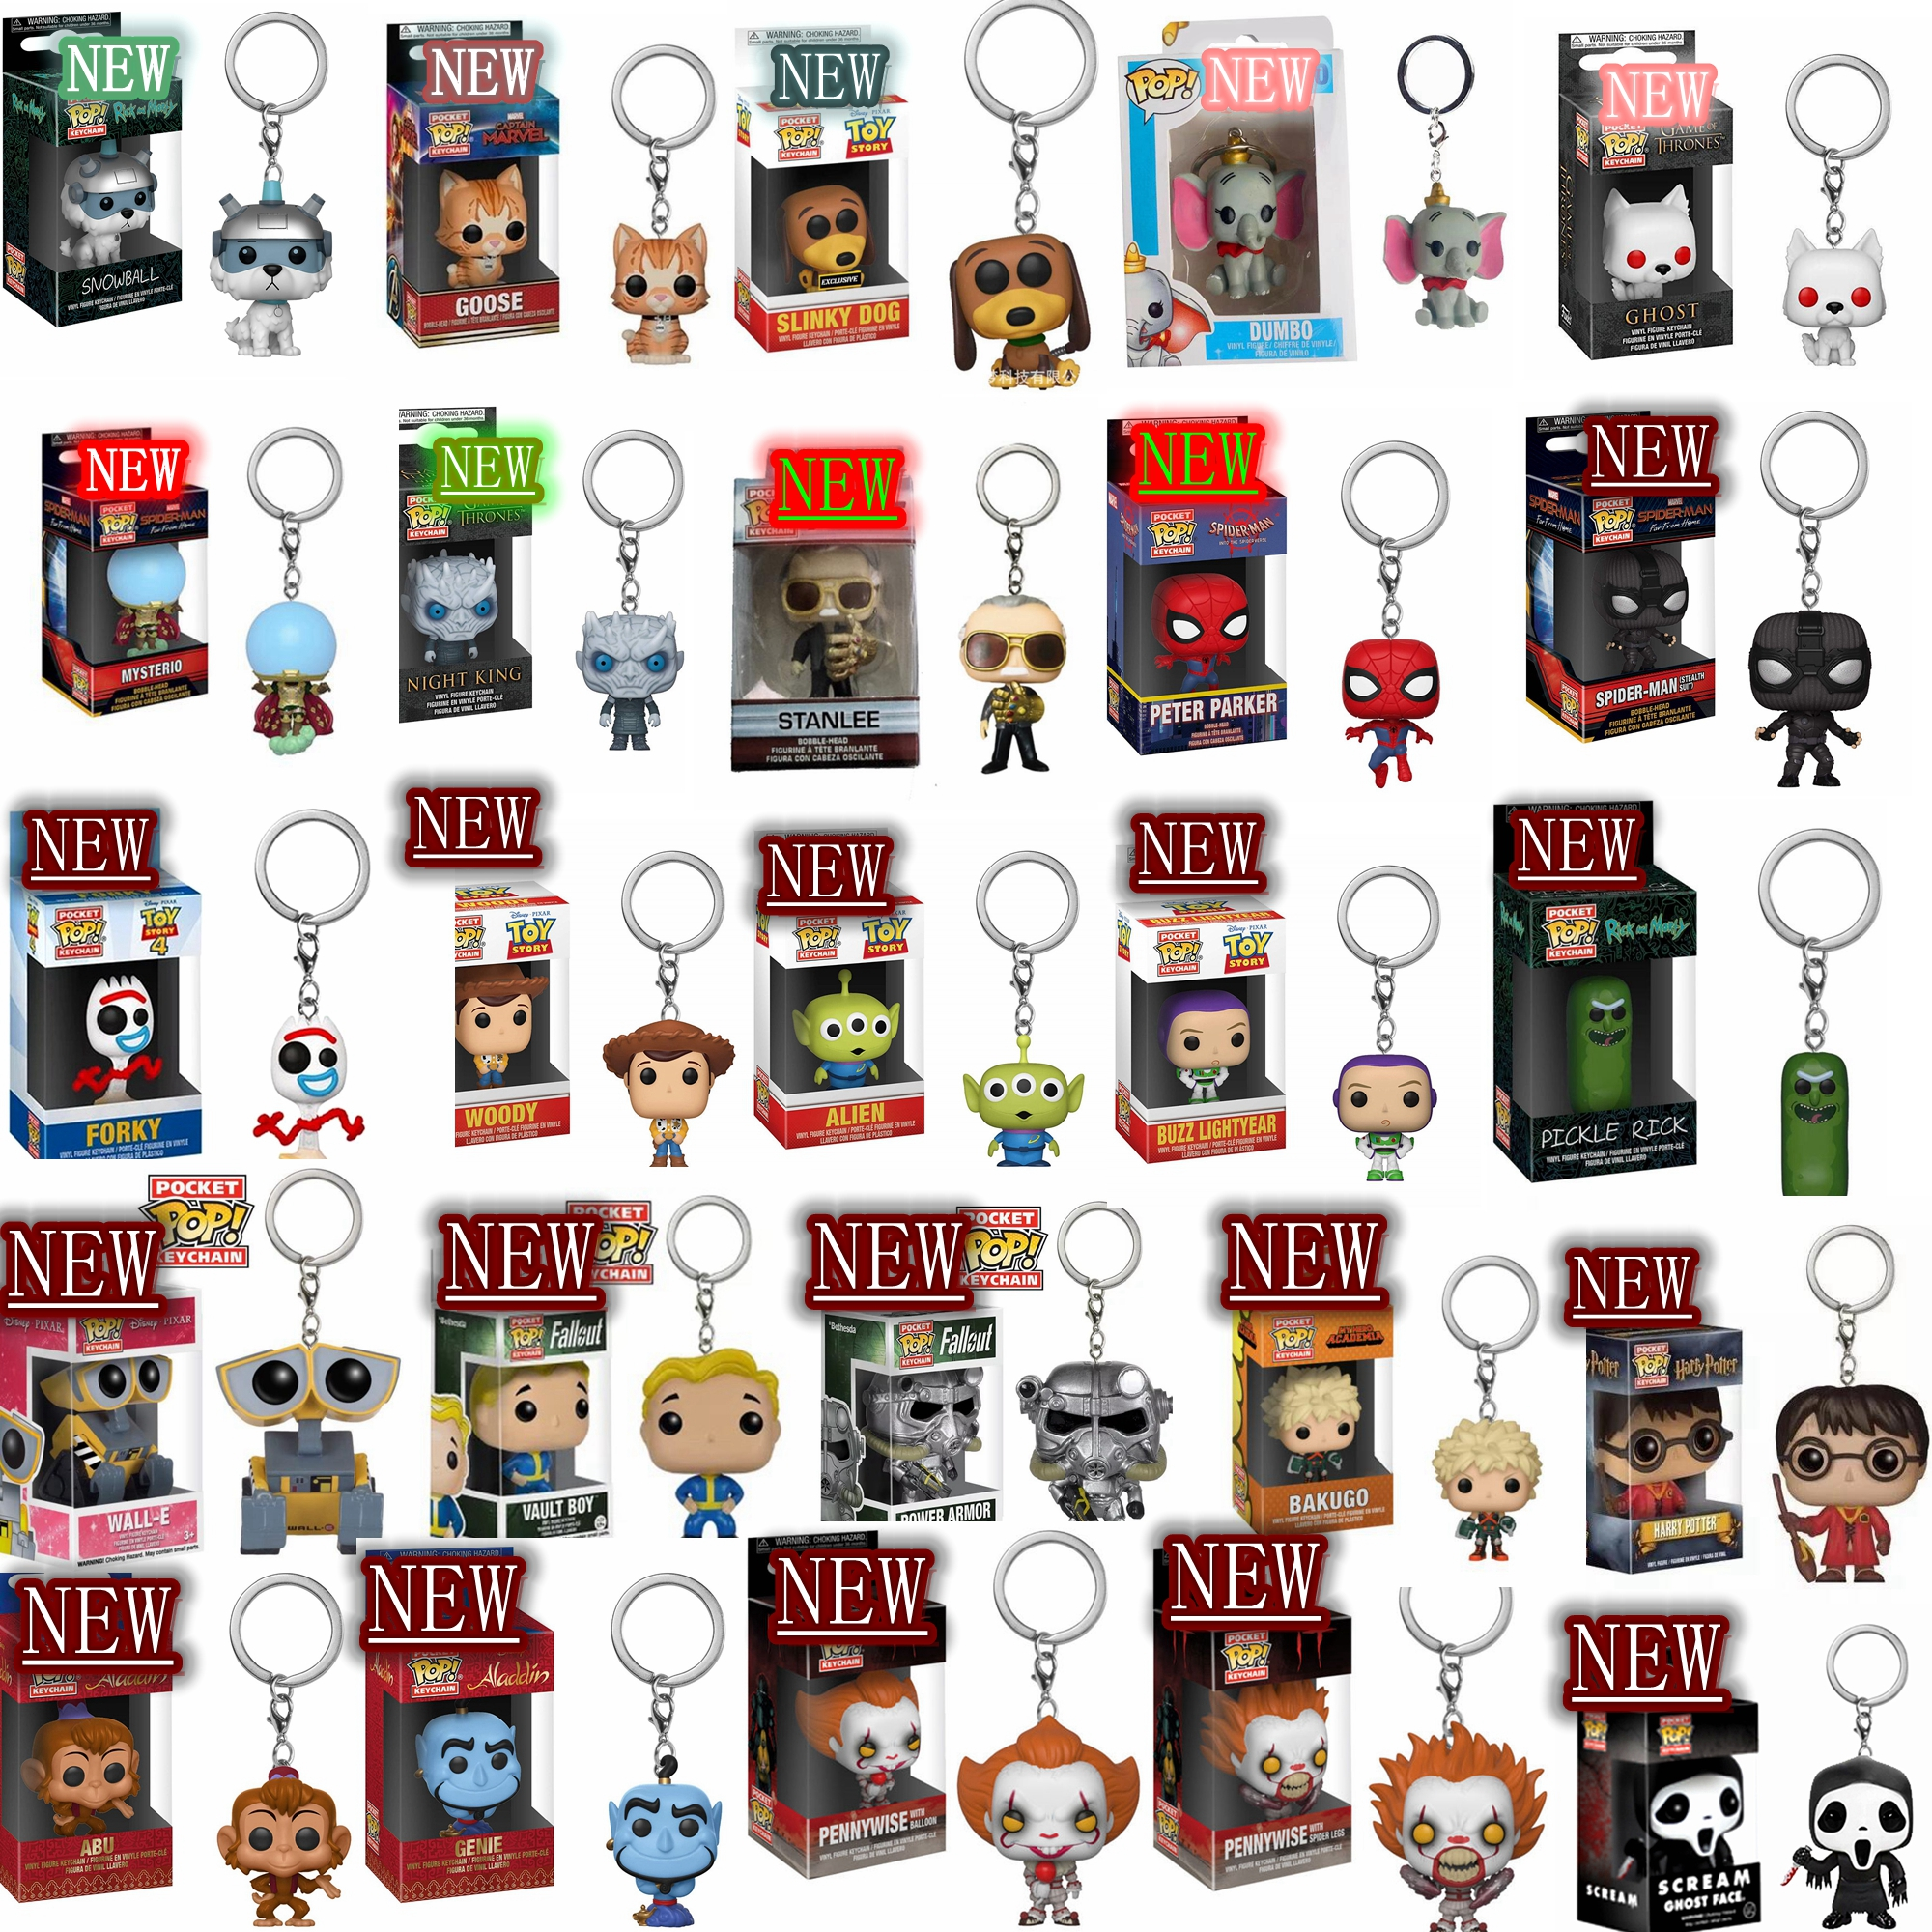 FUNKKO POP Harri Potter Toy Story Rick And Morty Game Of Thrones Dumbo Pennywise Scream Ghost Face Chucky Eve Toys With Box